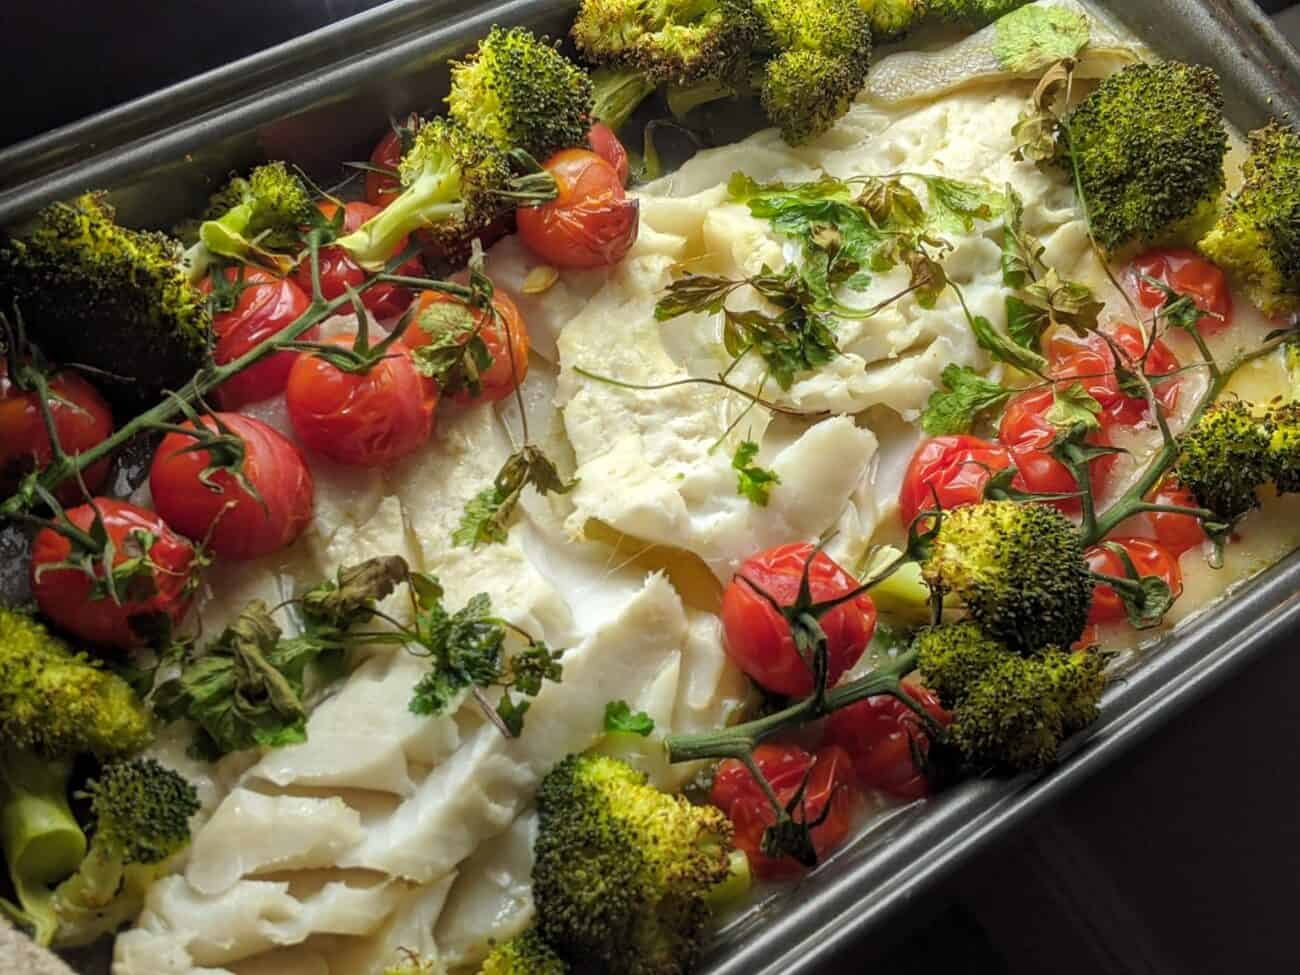 Baked Cod with Broccoli and Tomatoes